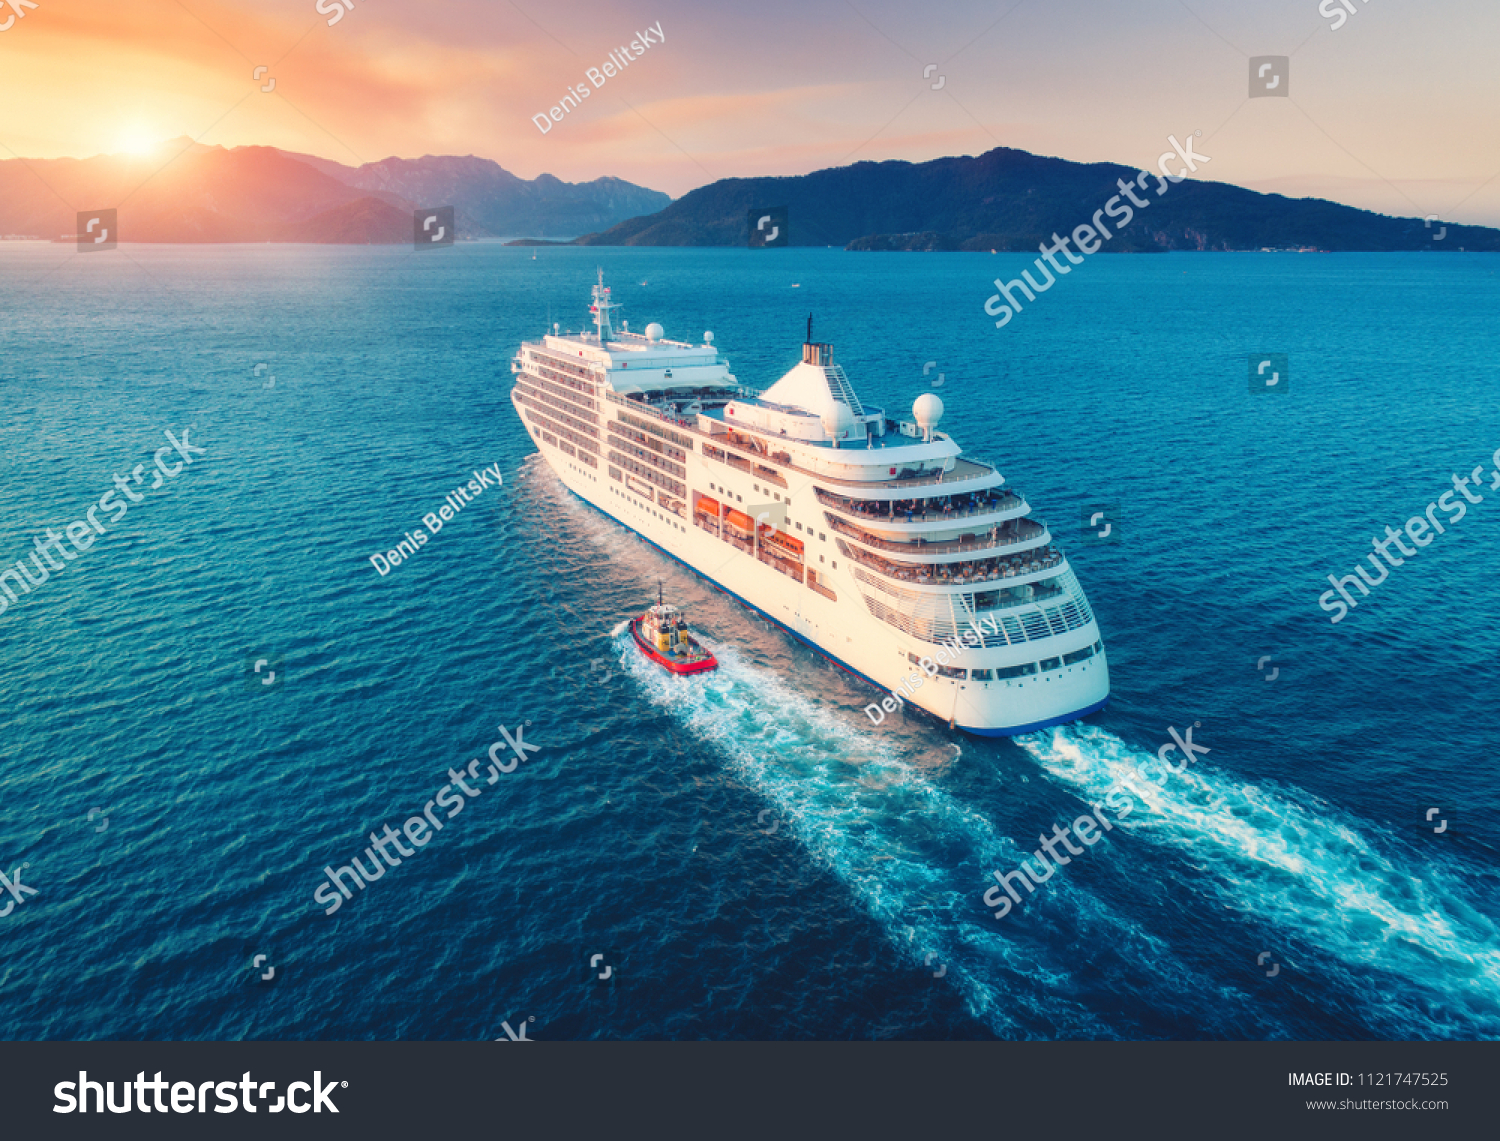 Cruise ship at harbor. Aerial view of beautiful large white ship at sunset. Colorful landscape with boats in marina bay, sea, colorful sky. Top view from drone of yacht. Luxury cruise. Floating liner #1121747525